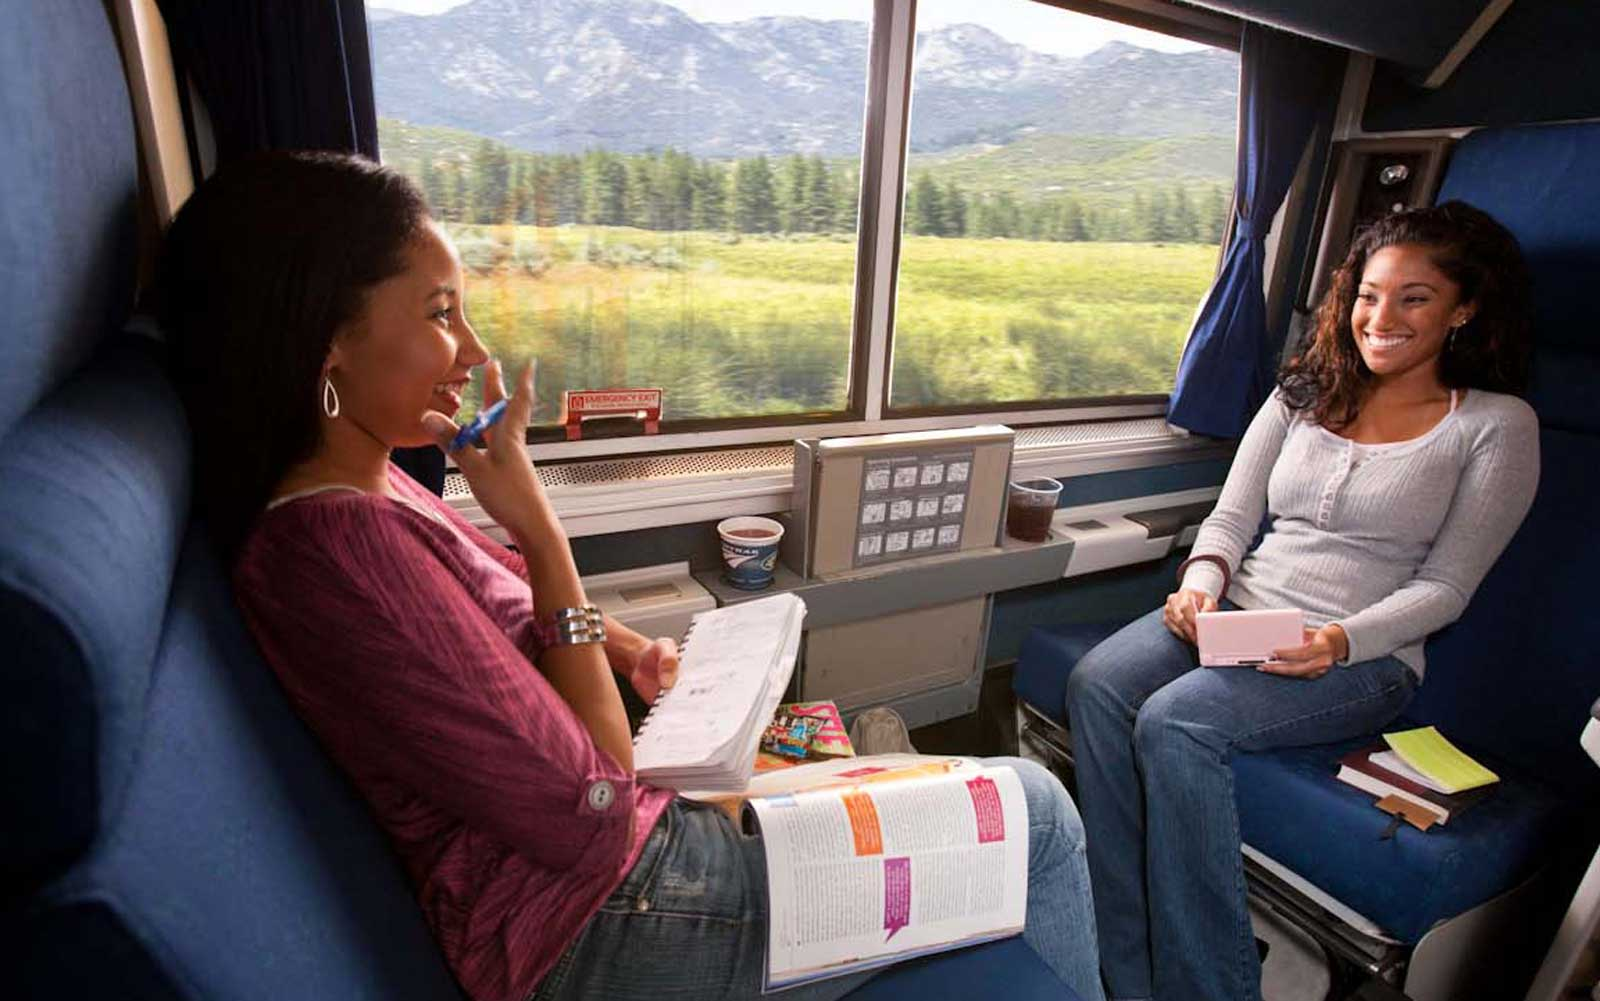 Amtrak Is Having a 2-for-1 Sale on Private Roomettes